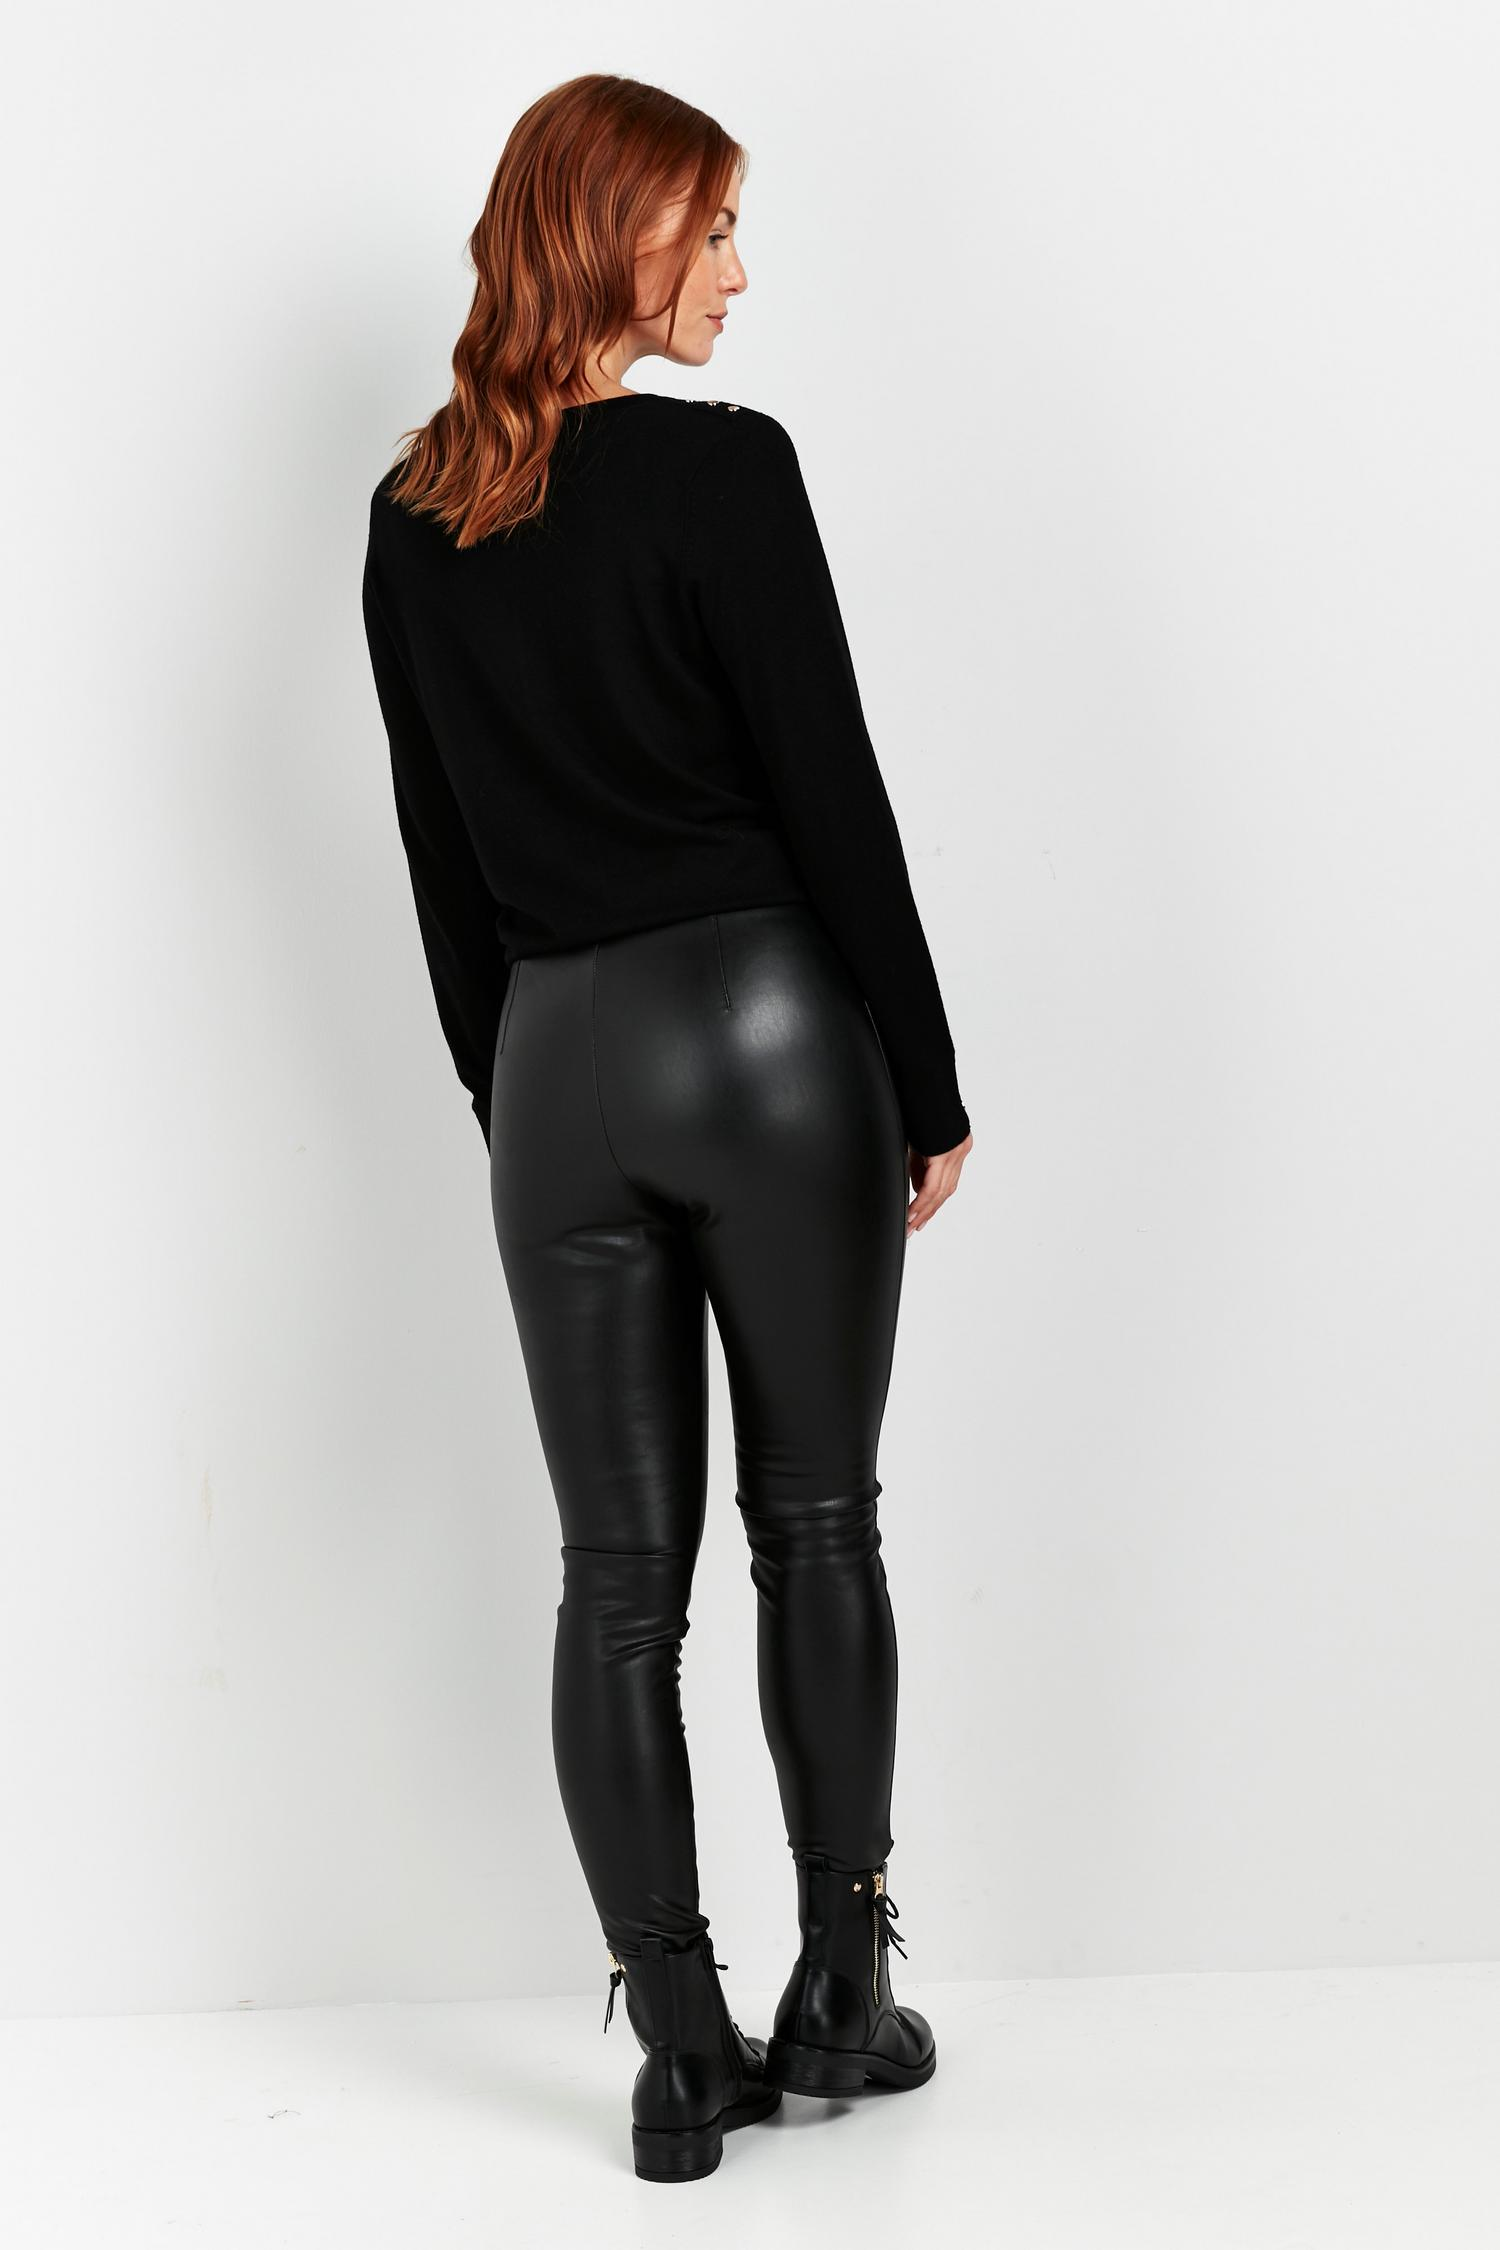 105 PETITE Black Faux Leather Legging image number 2